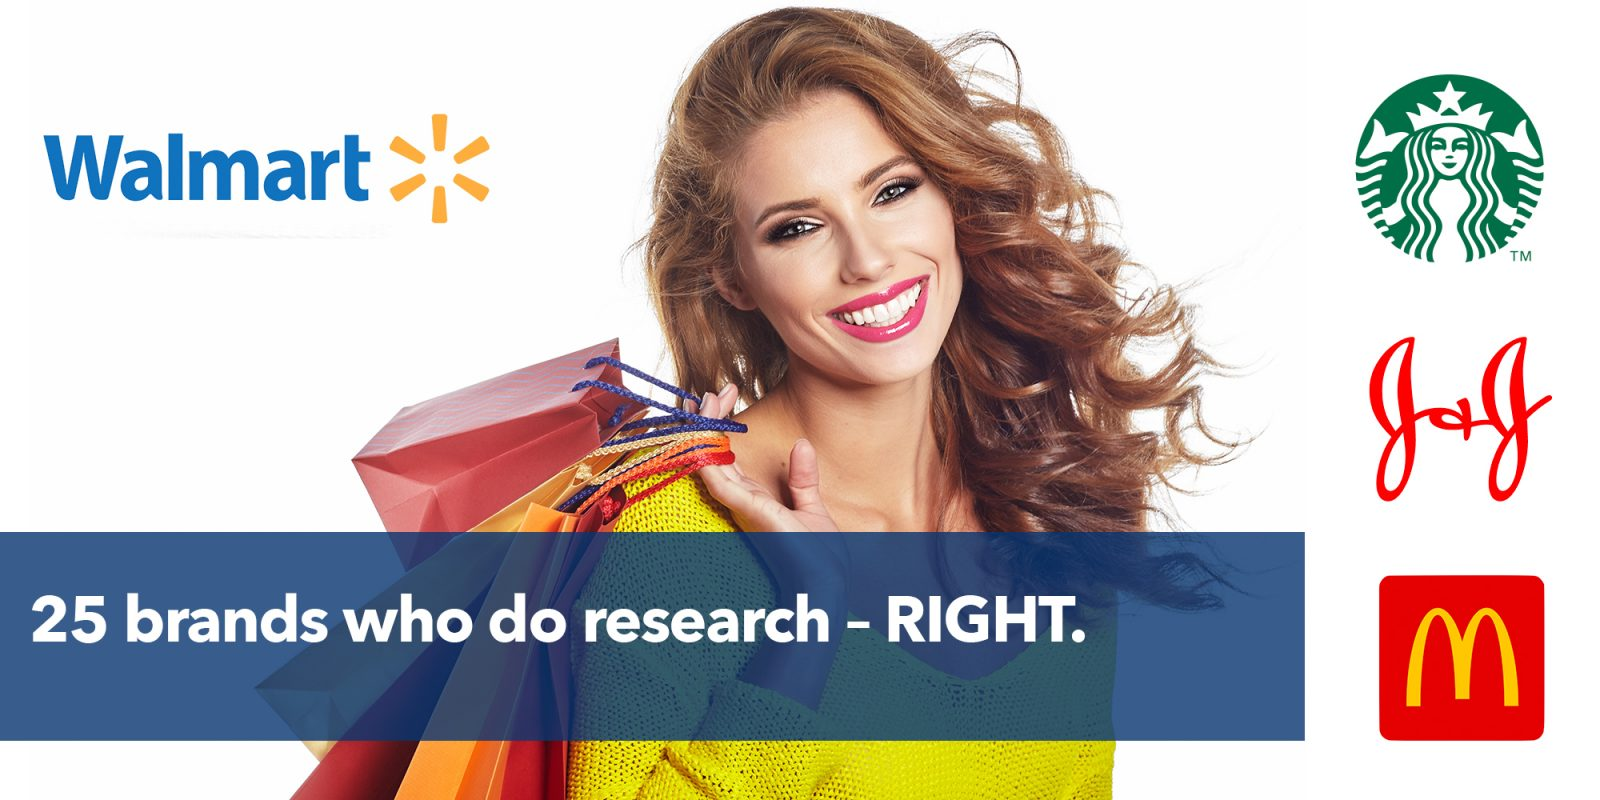 25-brands-who-do-research-right